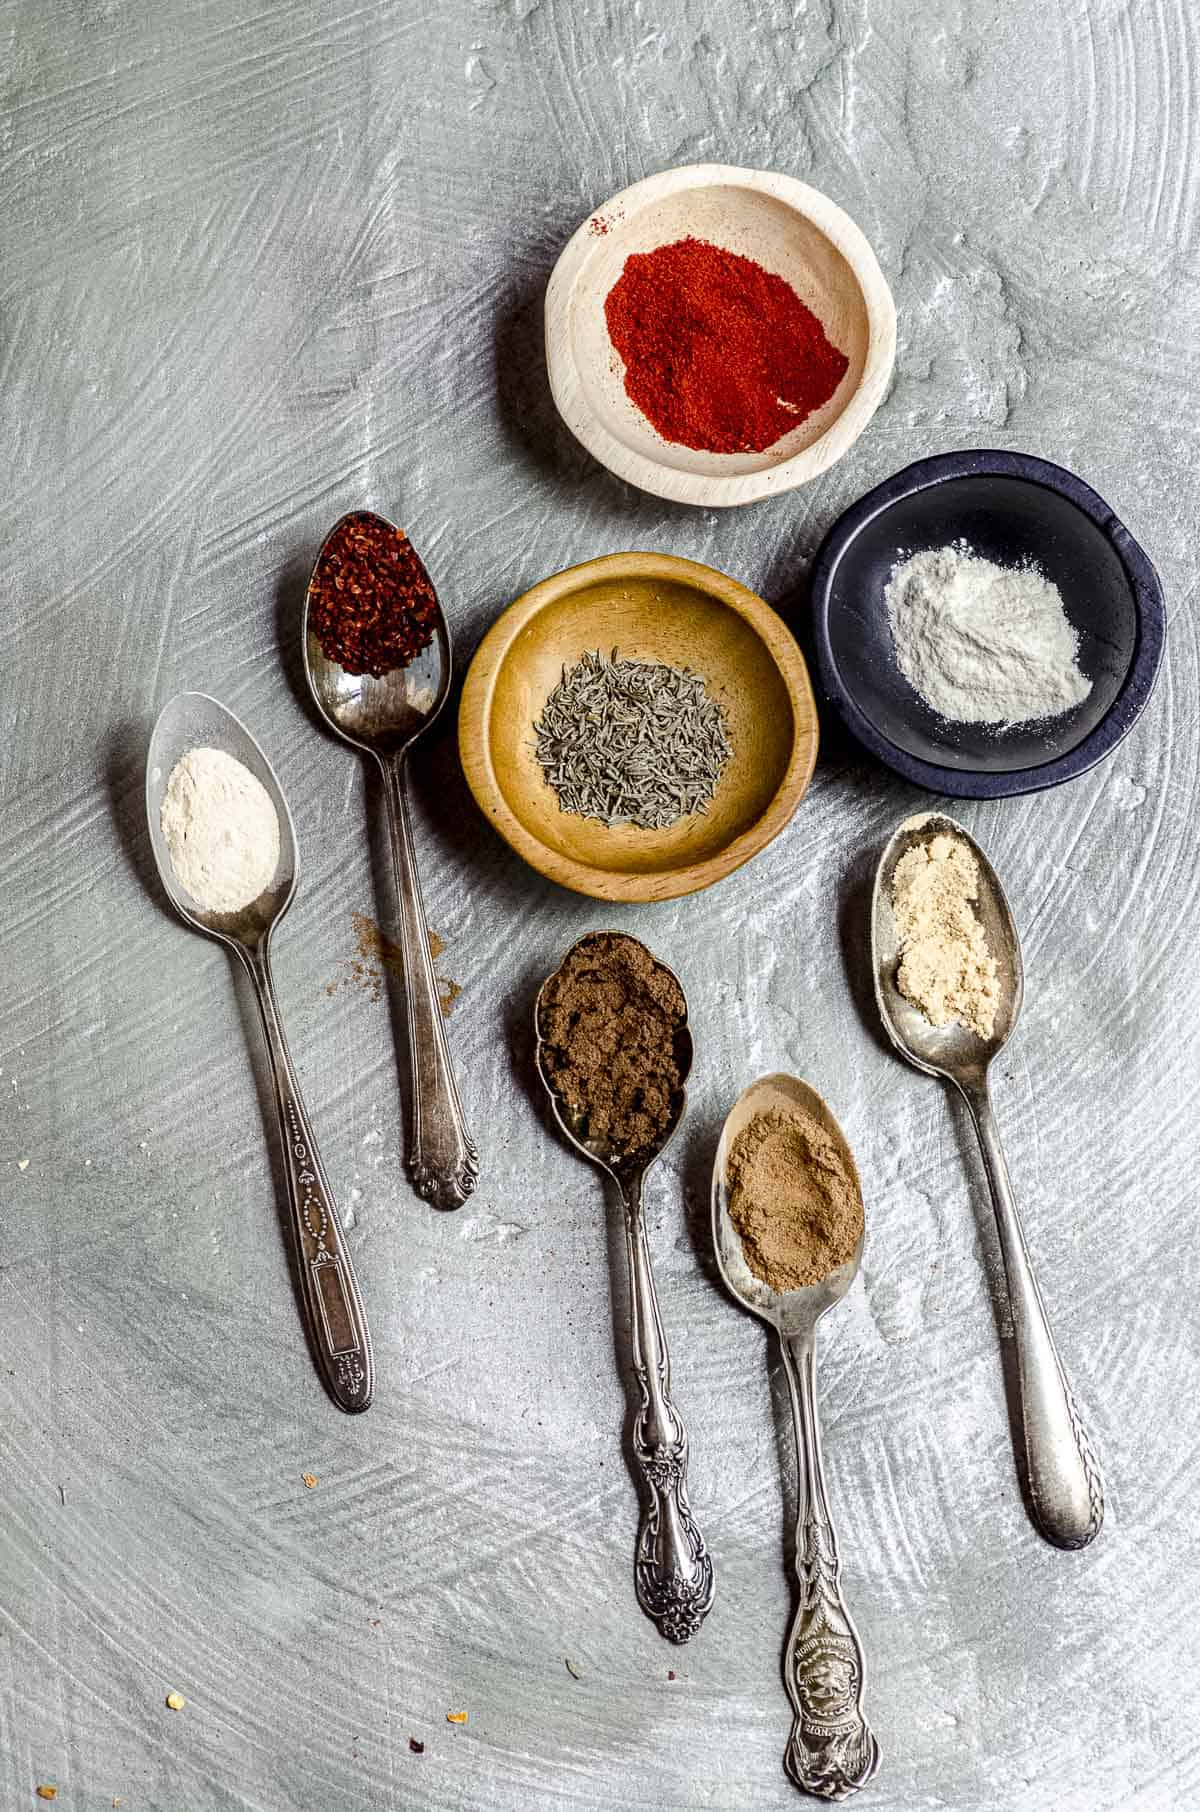 Overhead view of 3 small bowl with spices and some small spoons with spices